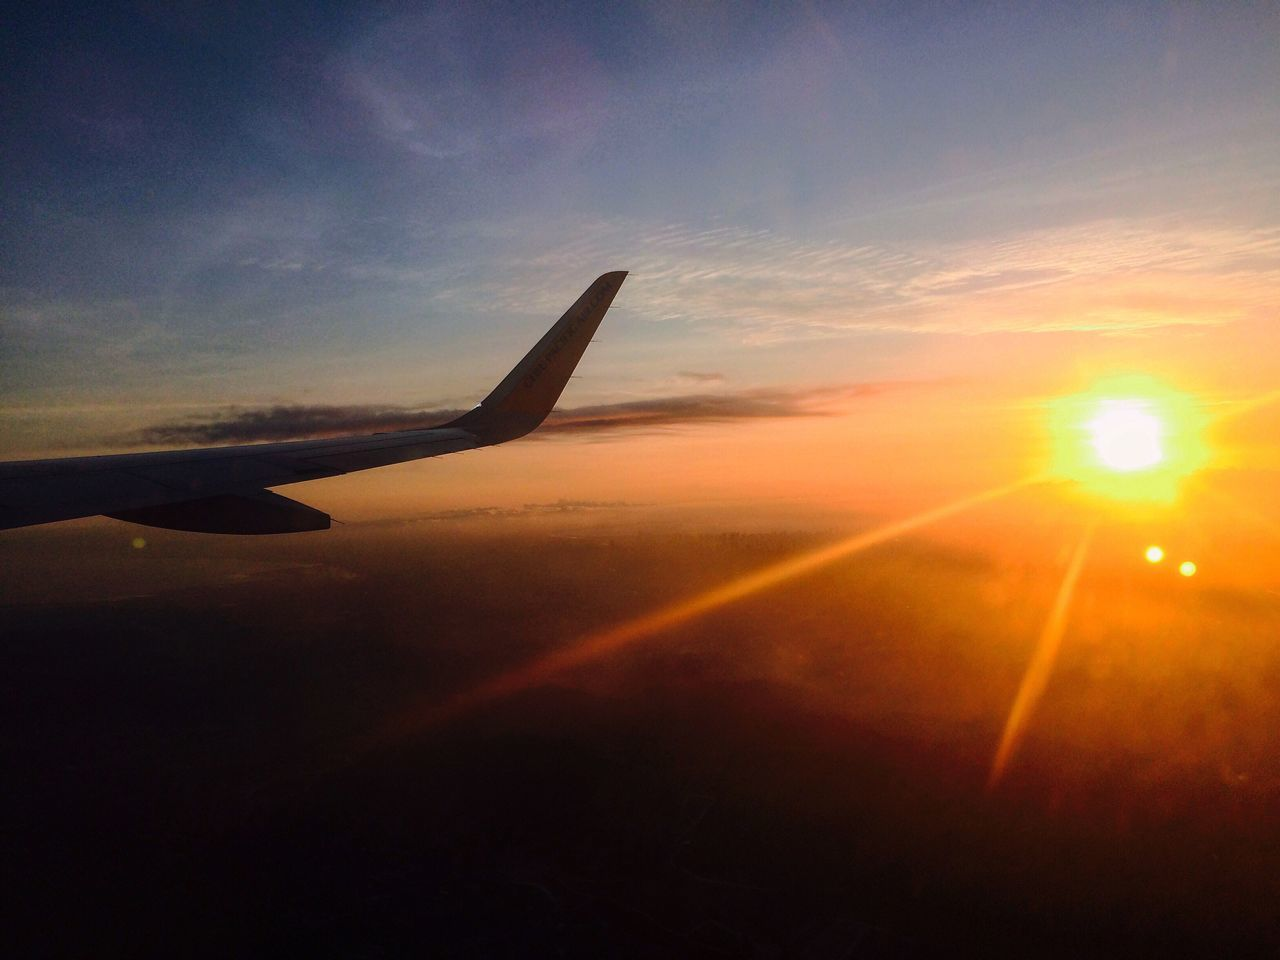 Iphonephotography Airplane Transportation Sunset Sky Airplane Wing Flying Journey Aircraft Wing Day Iphonesia IPhoneography Philippines